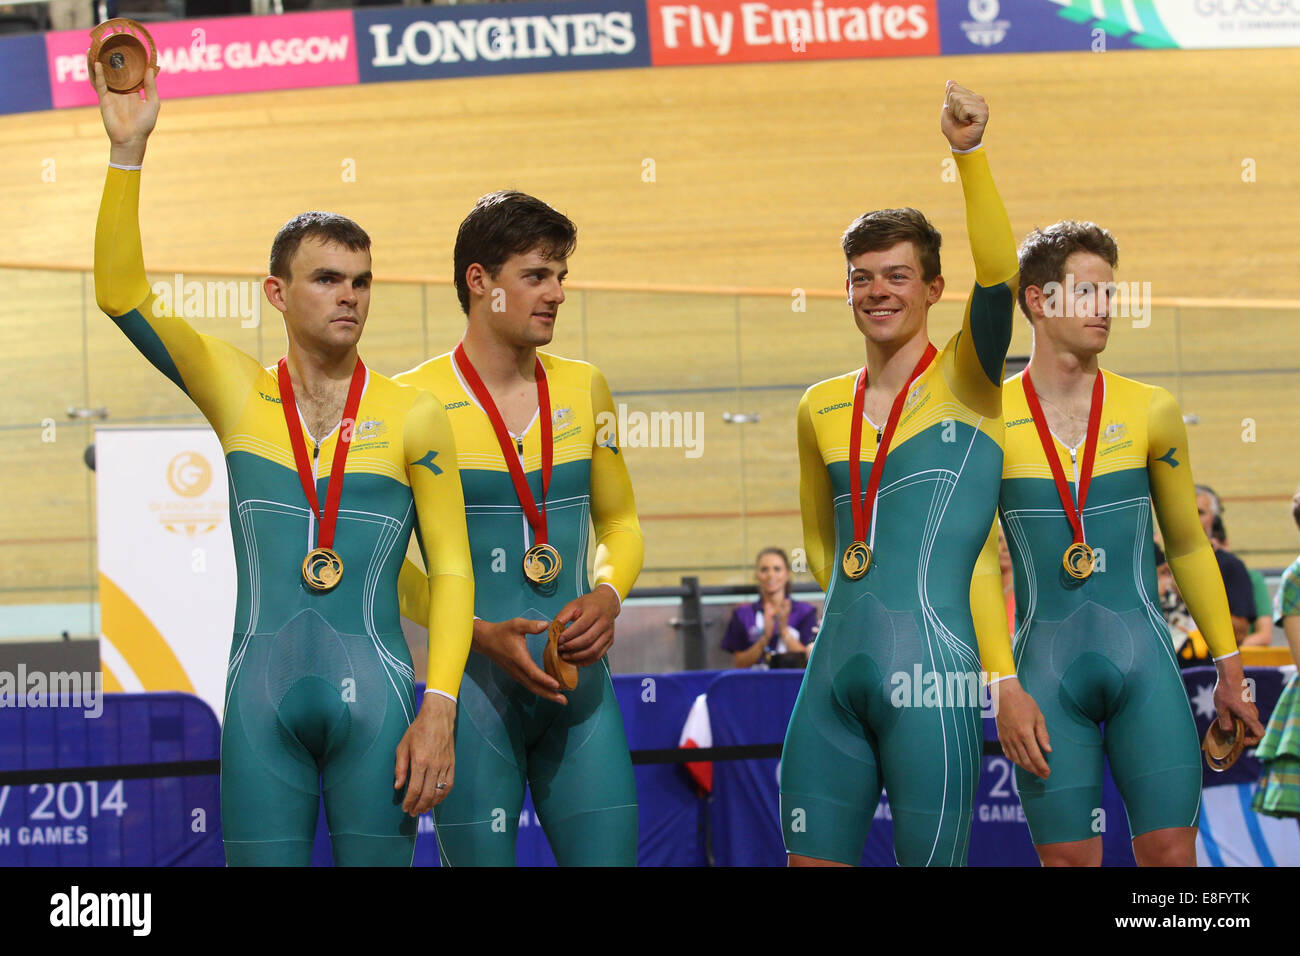 Australia with their gold medals. The Medal Cermony.  Luke Bobridge, Luke Davison, Alex Edmondson and Glenn O'Shea - Stock Image